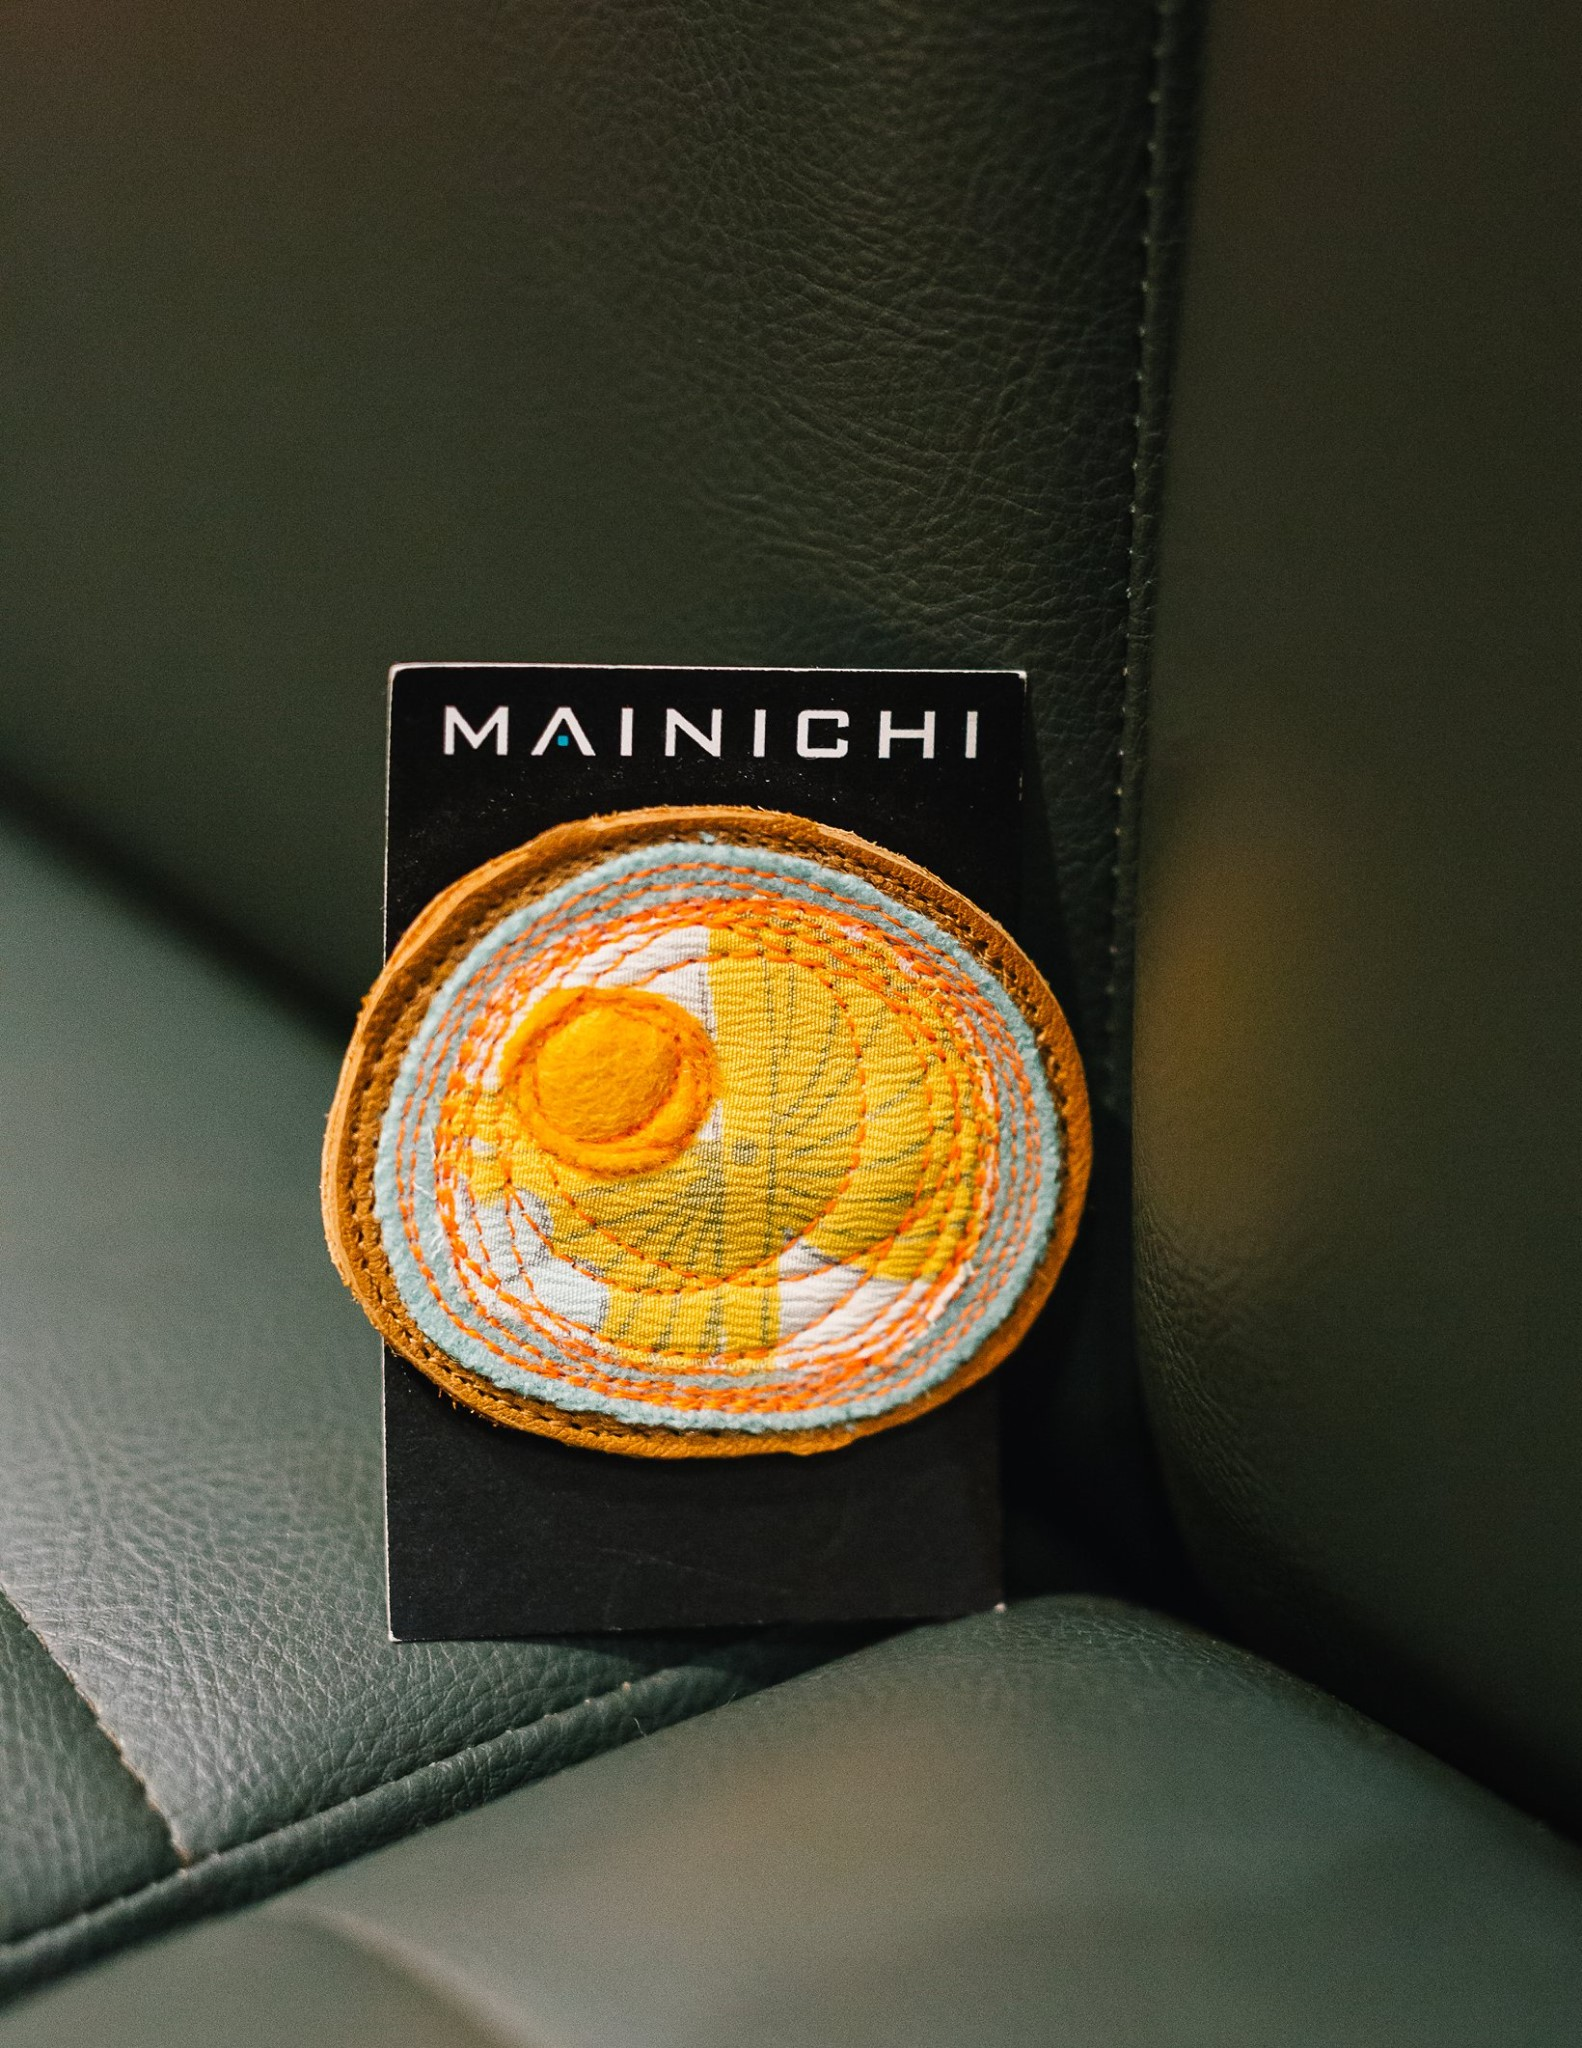 Thank you to our wonderful event partners, Mainichi Design, for supporting our raffle. We raised $400 to support the Mitrataa Foundation in Nepal.